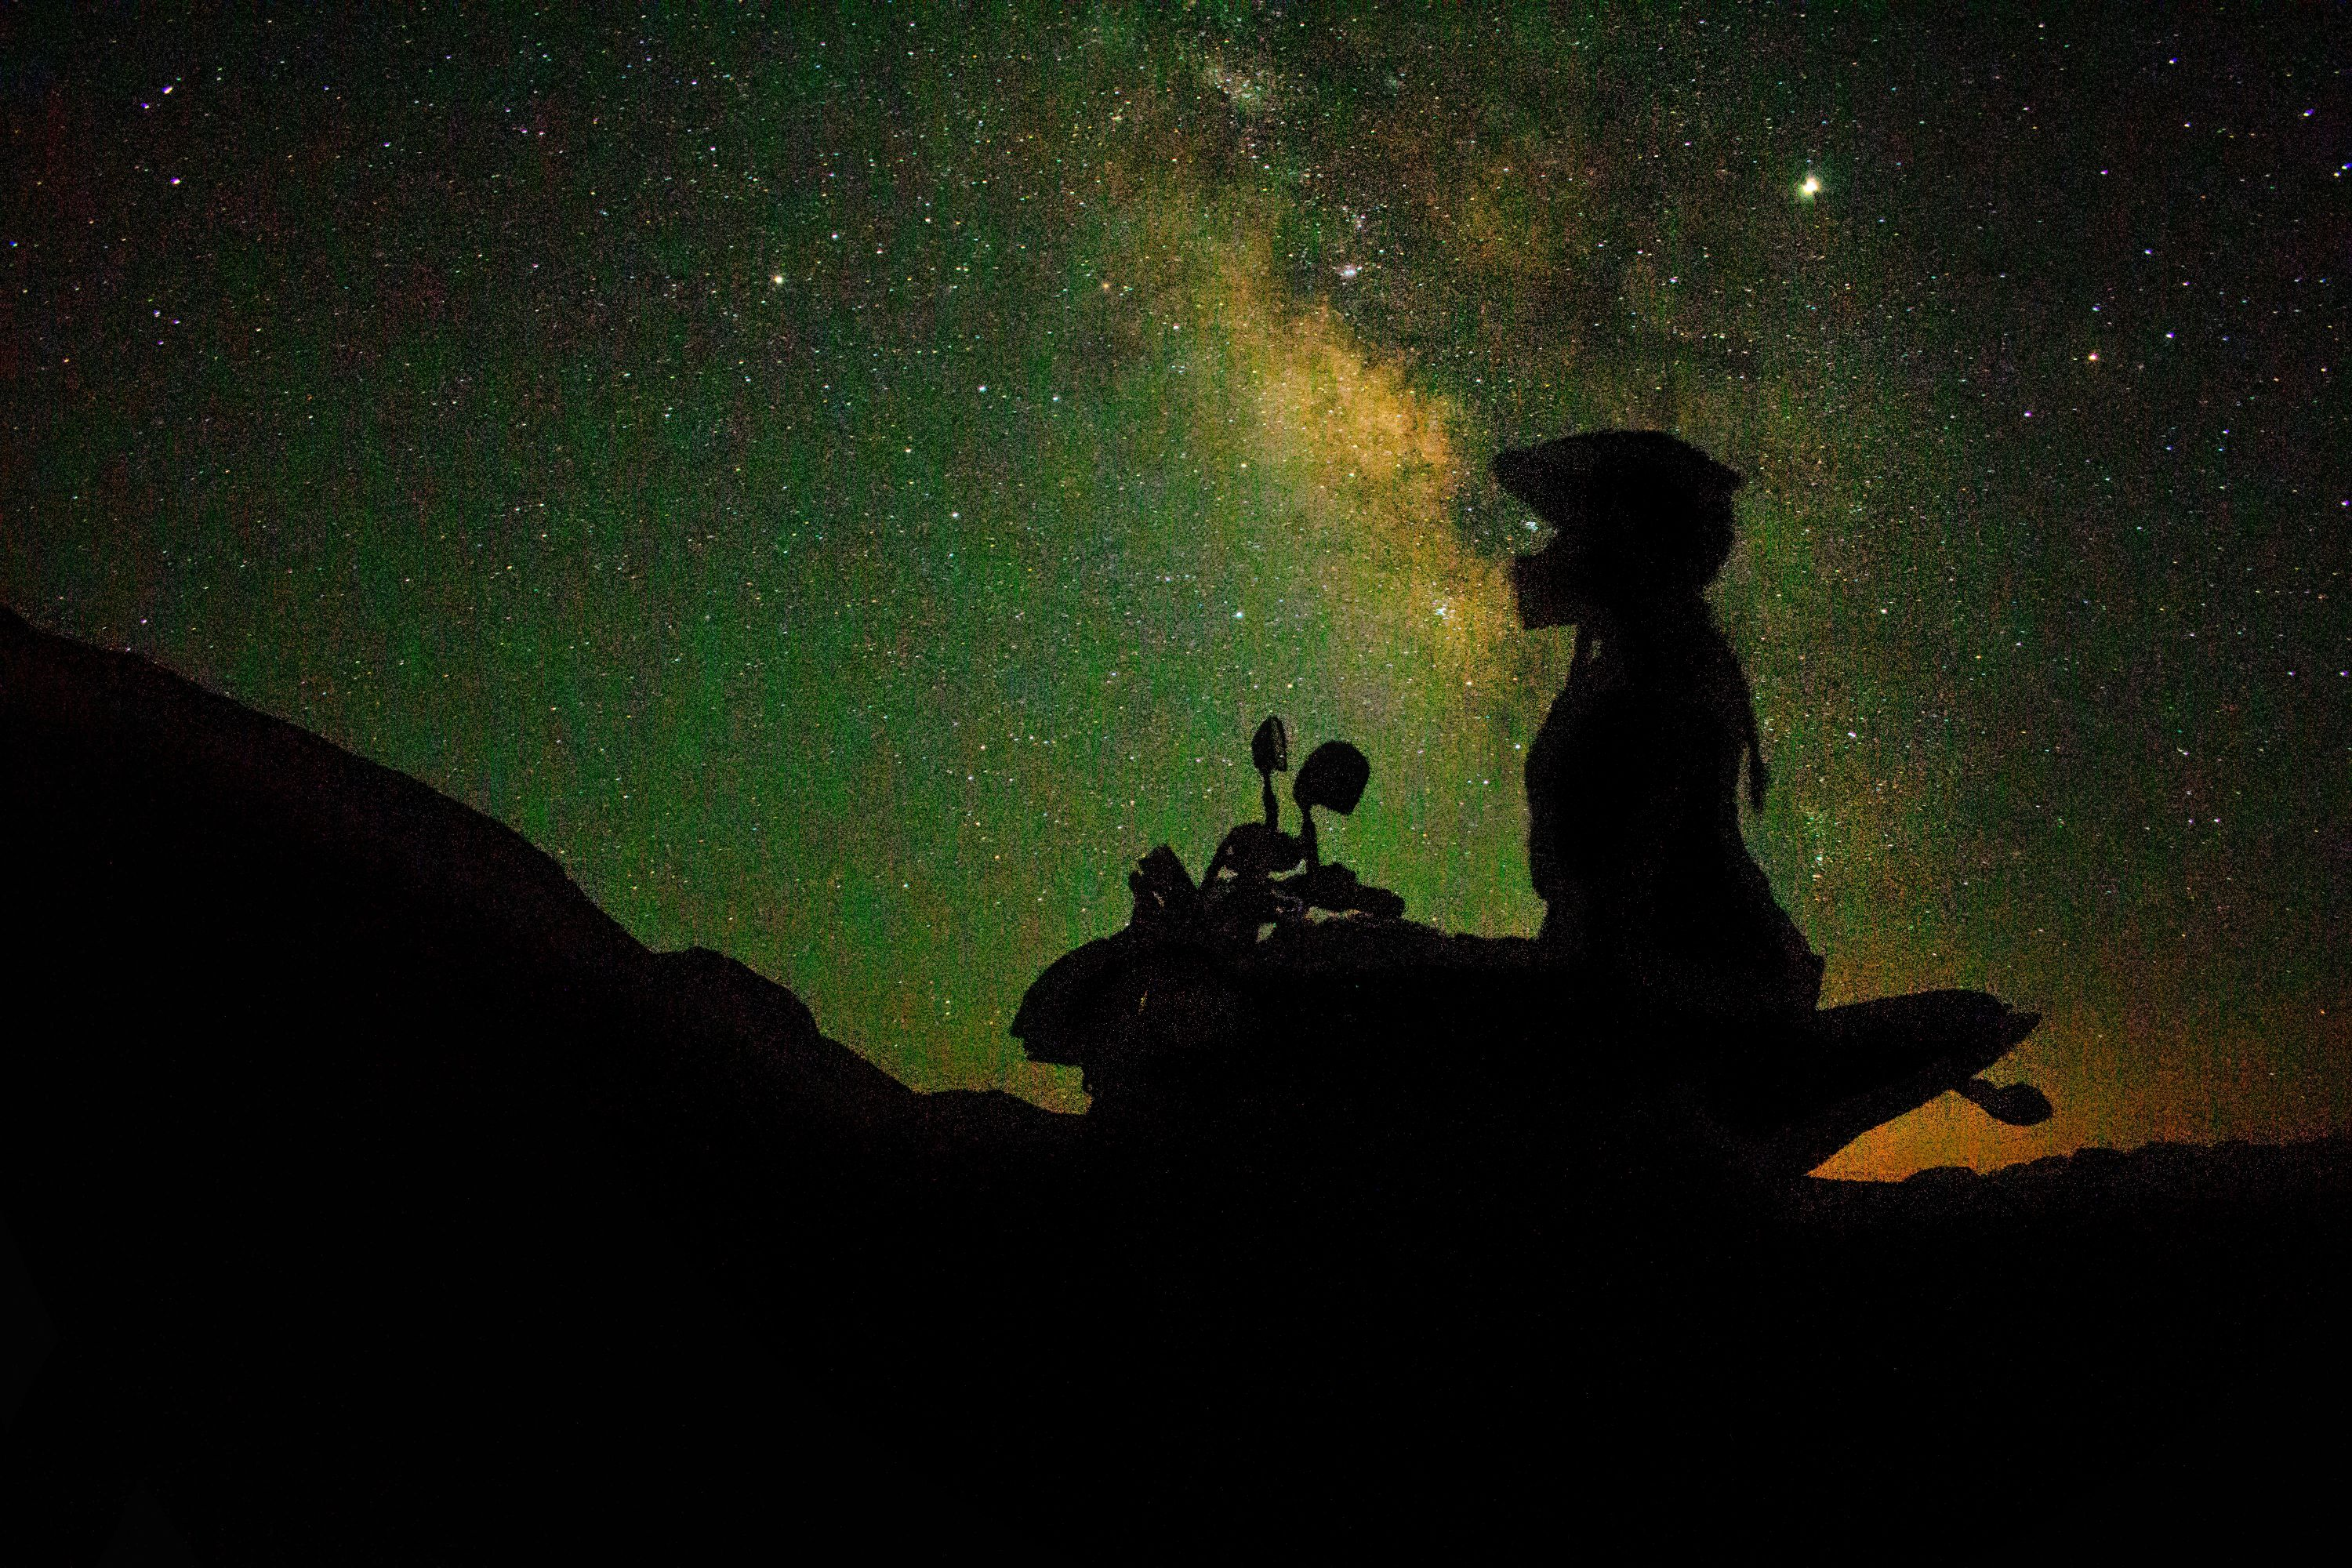 Solo Motorcycle Adventure: Death Valley National Park